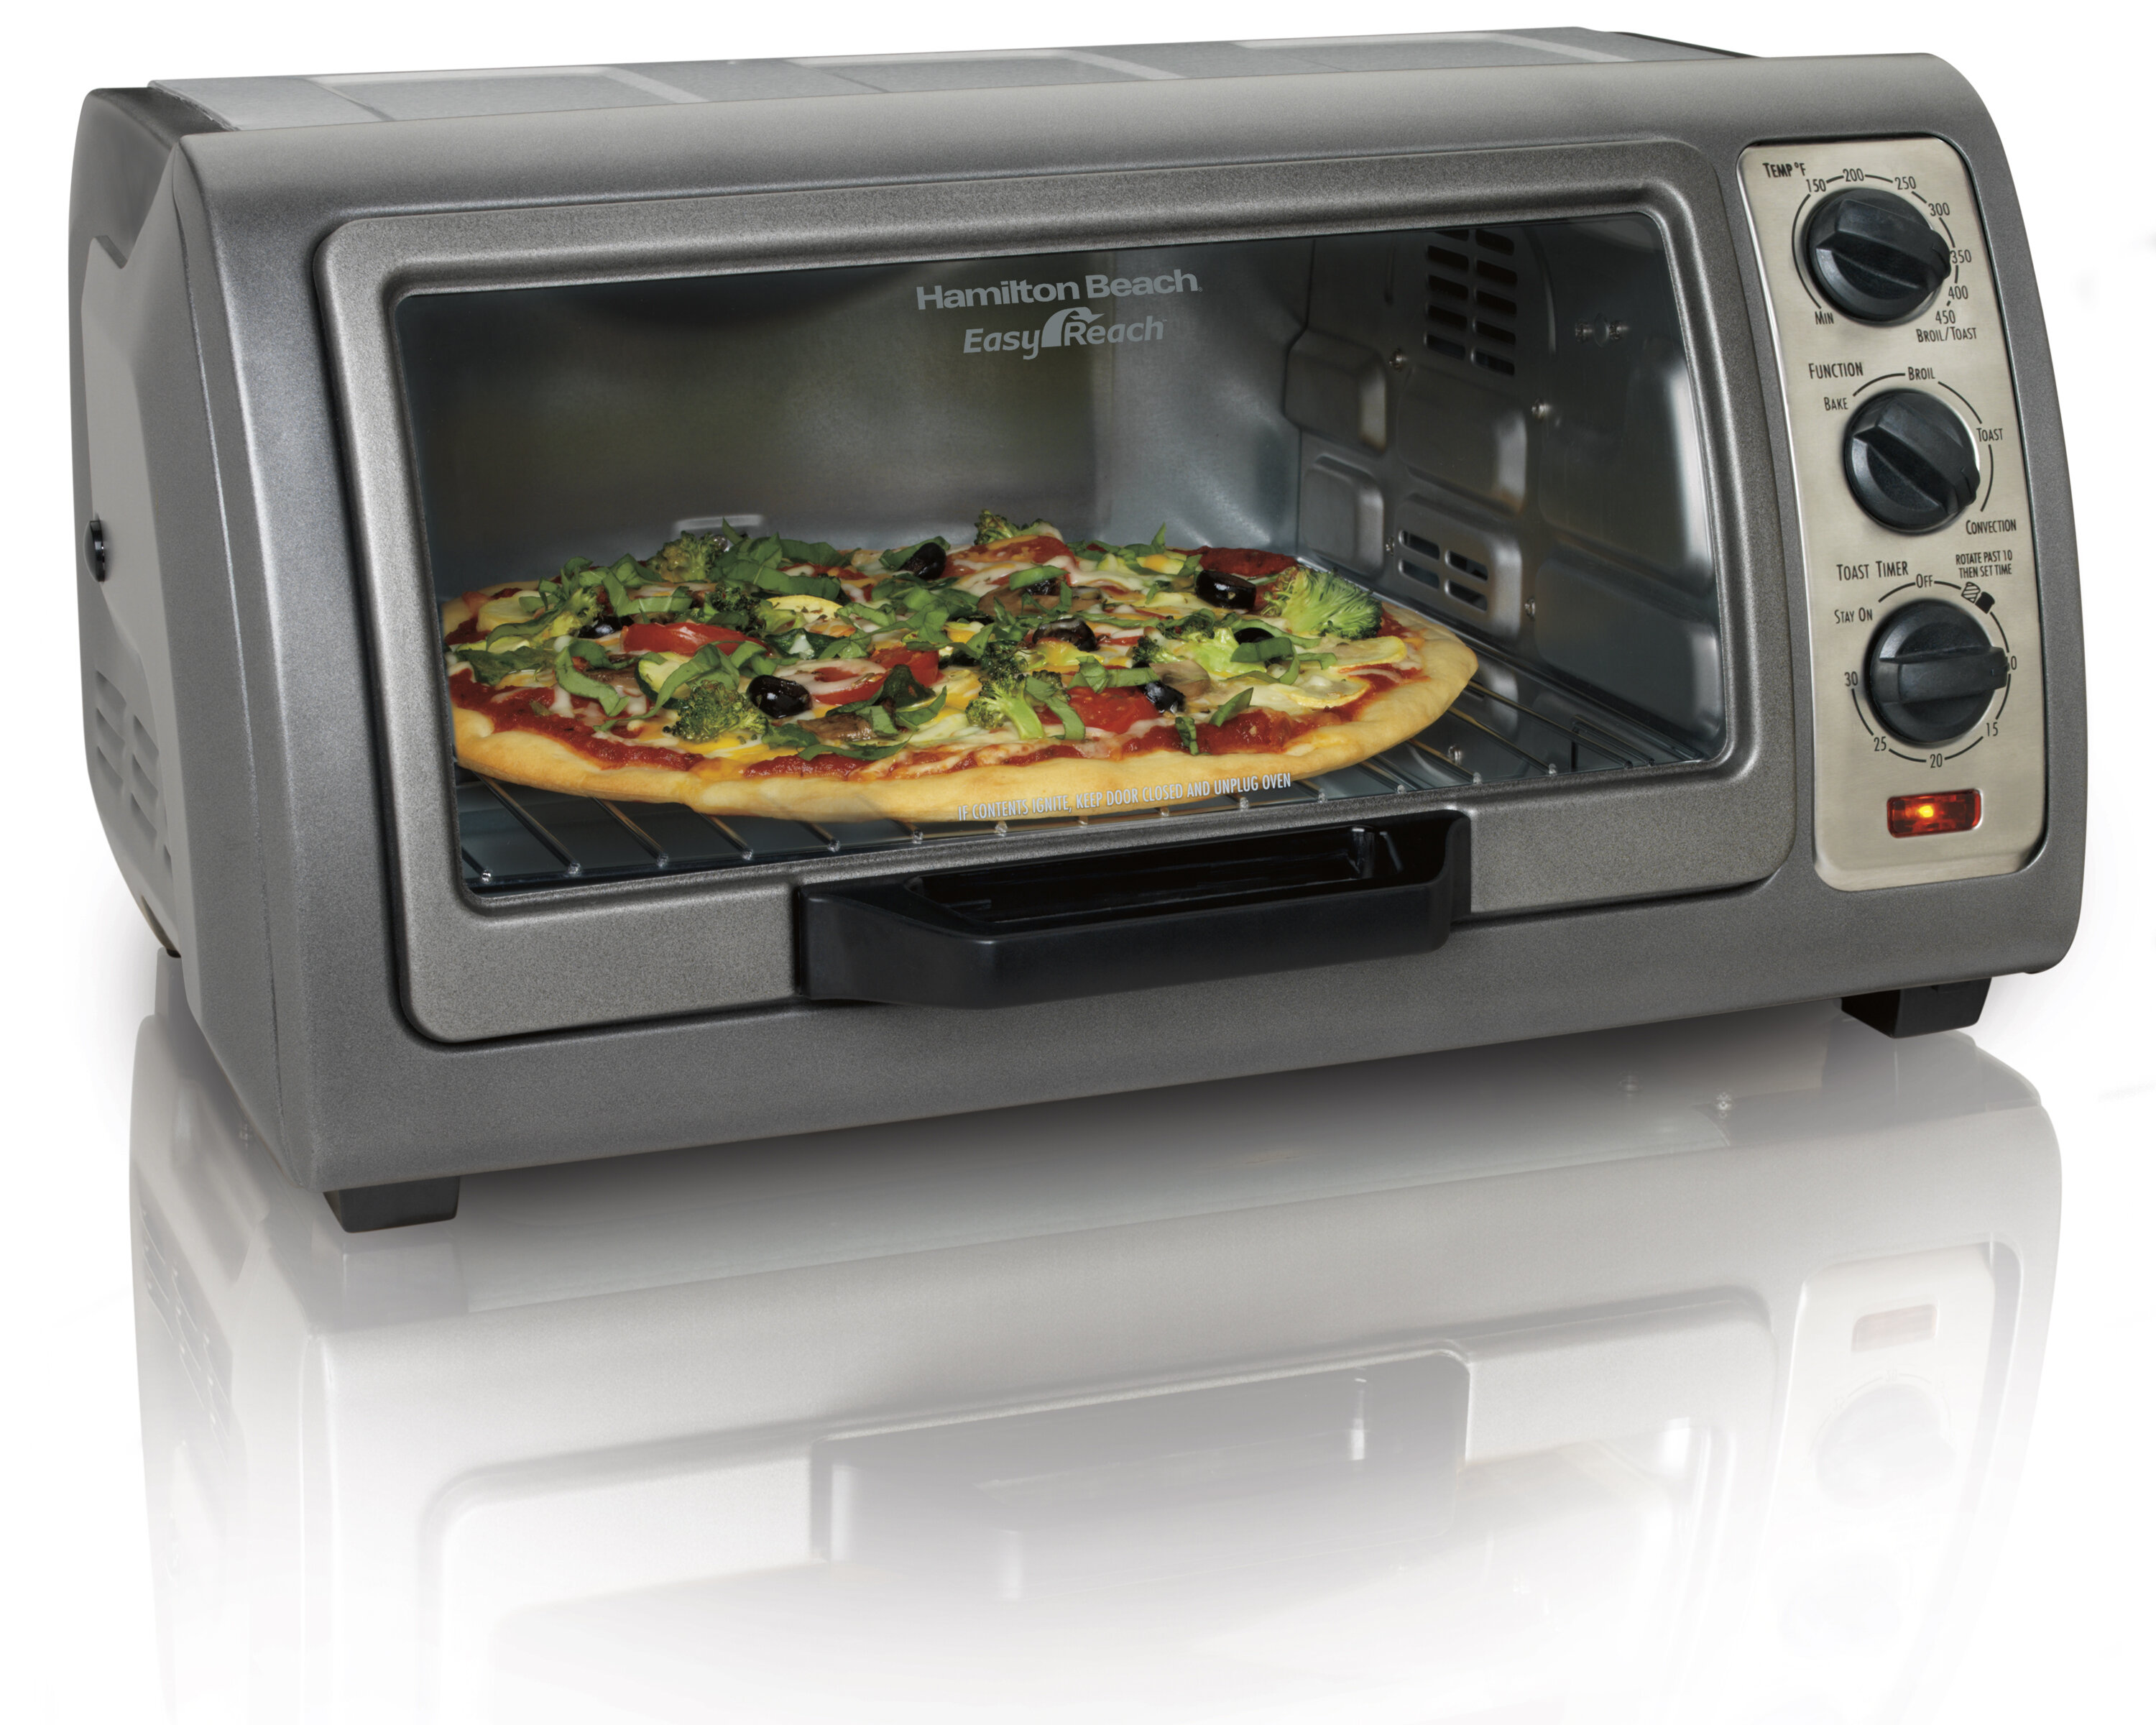 Best Way To Heat Up Pizza In Toaster Oven